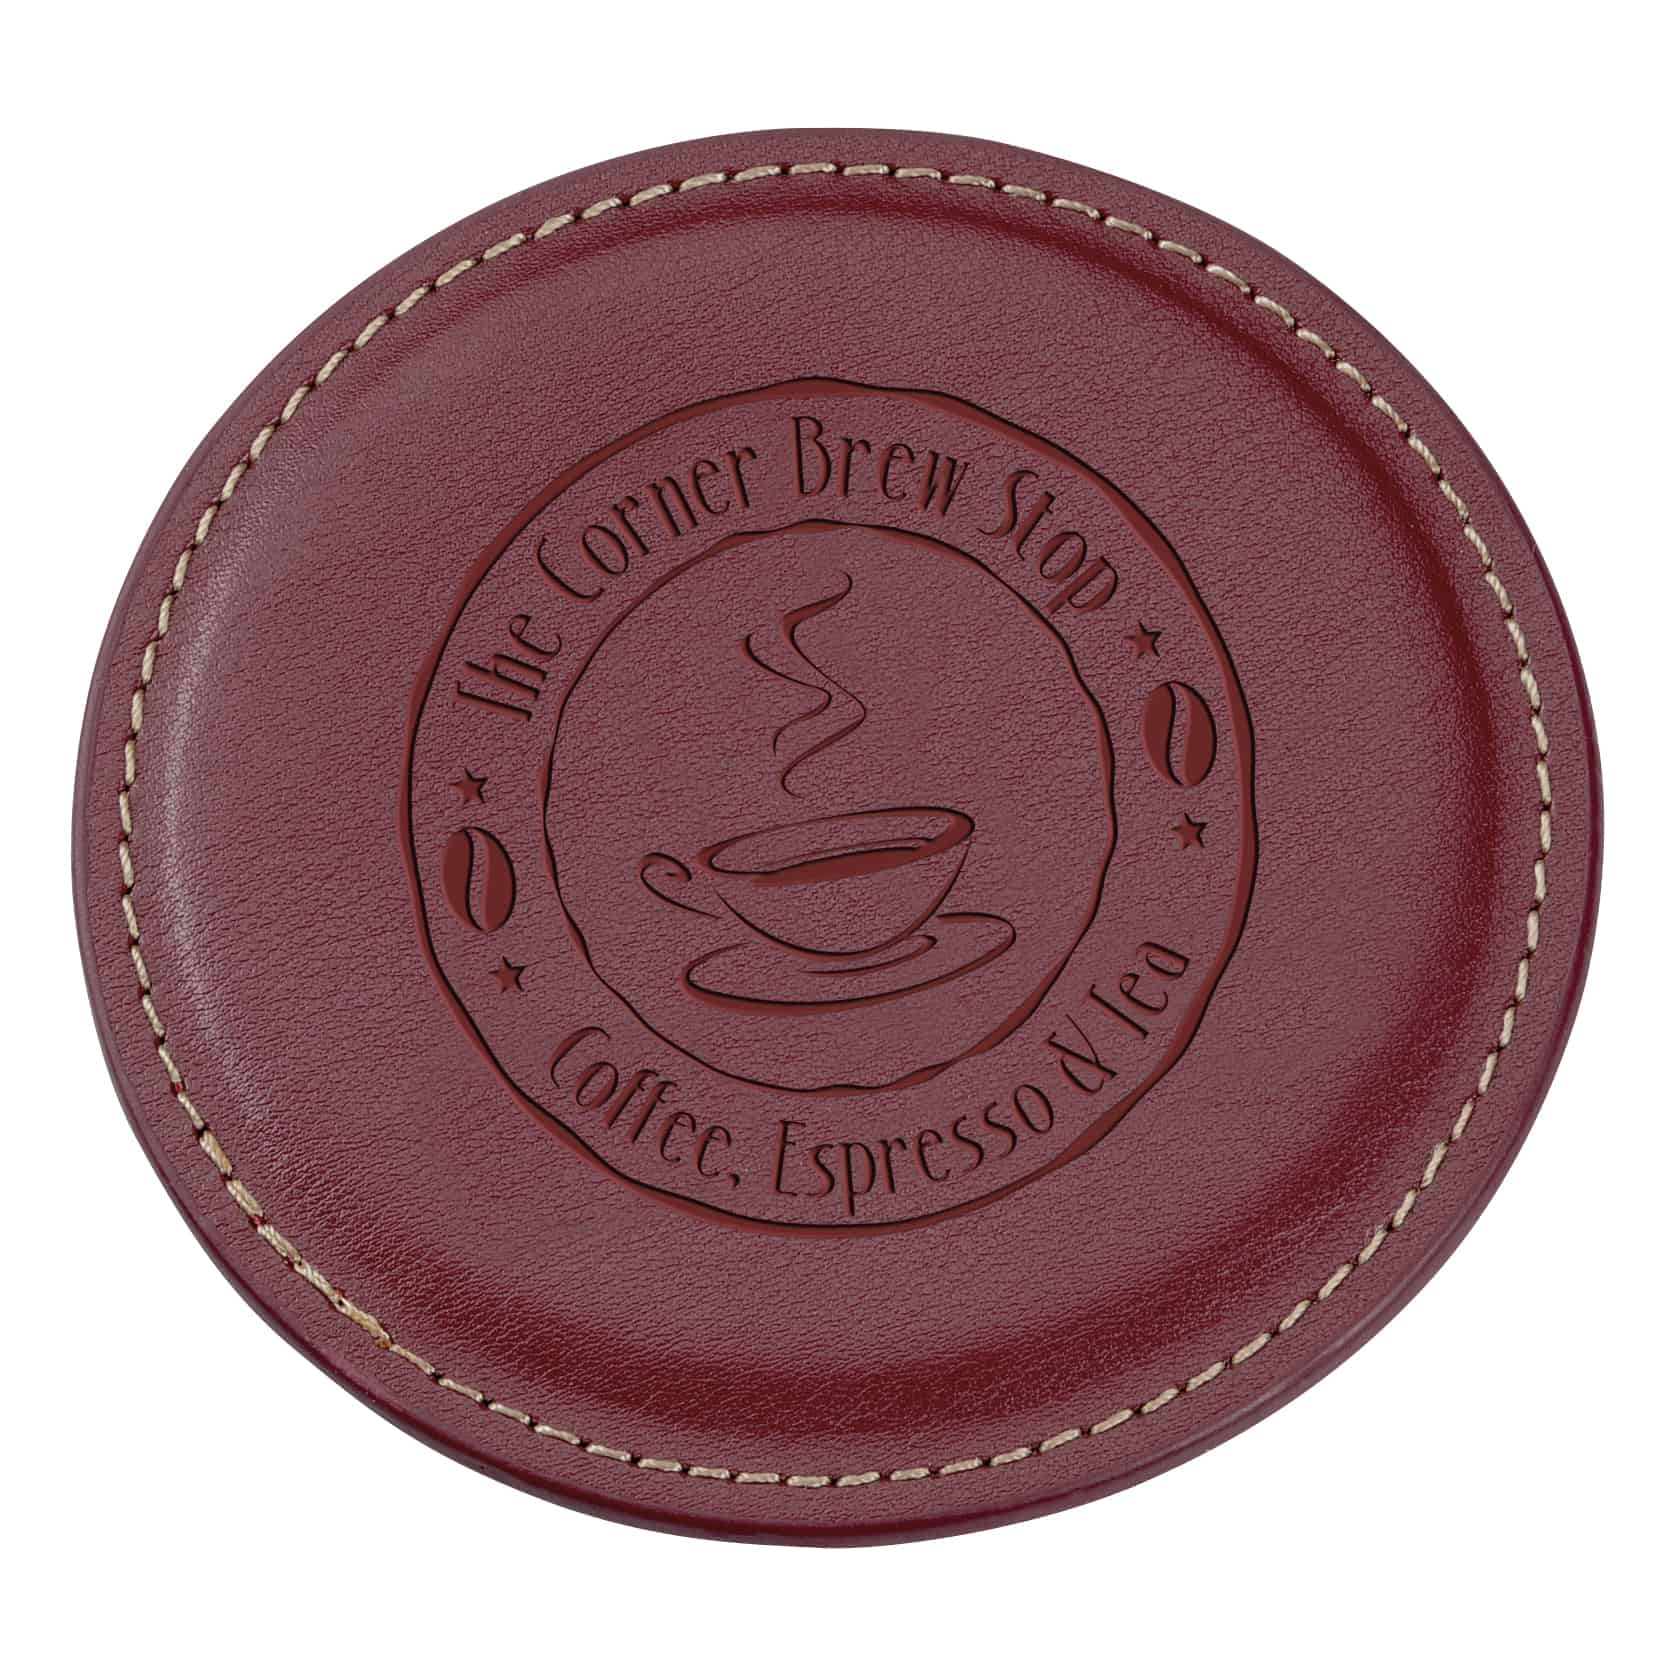 A Vintage Round Bonded Leather Coaster.